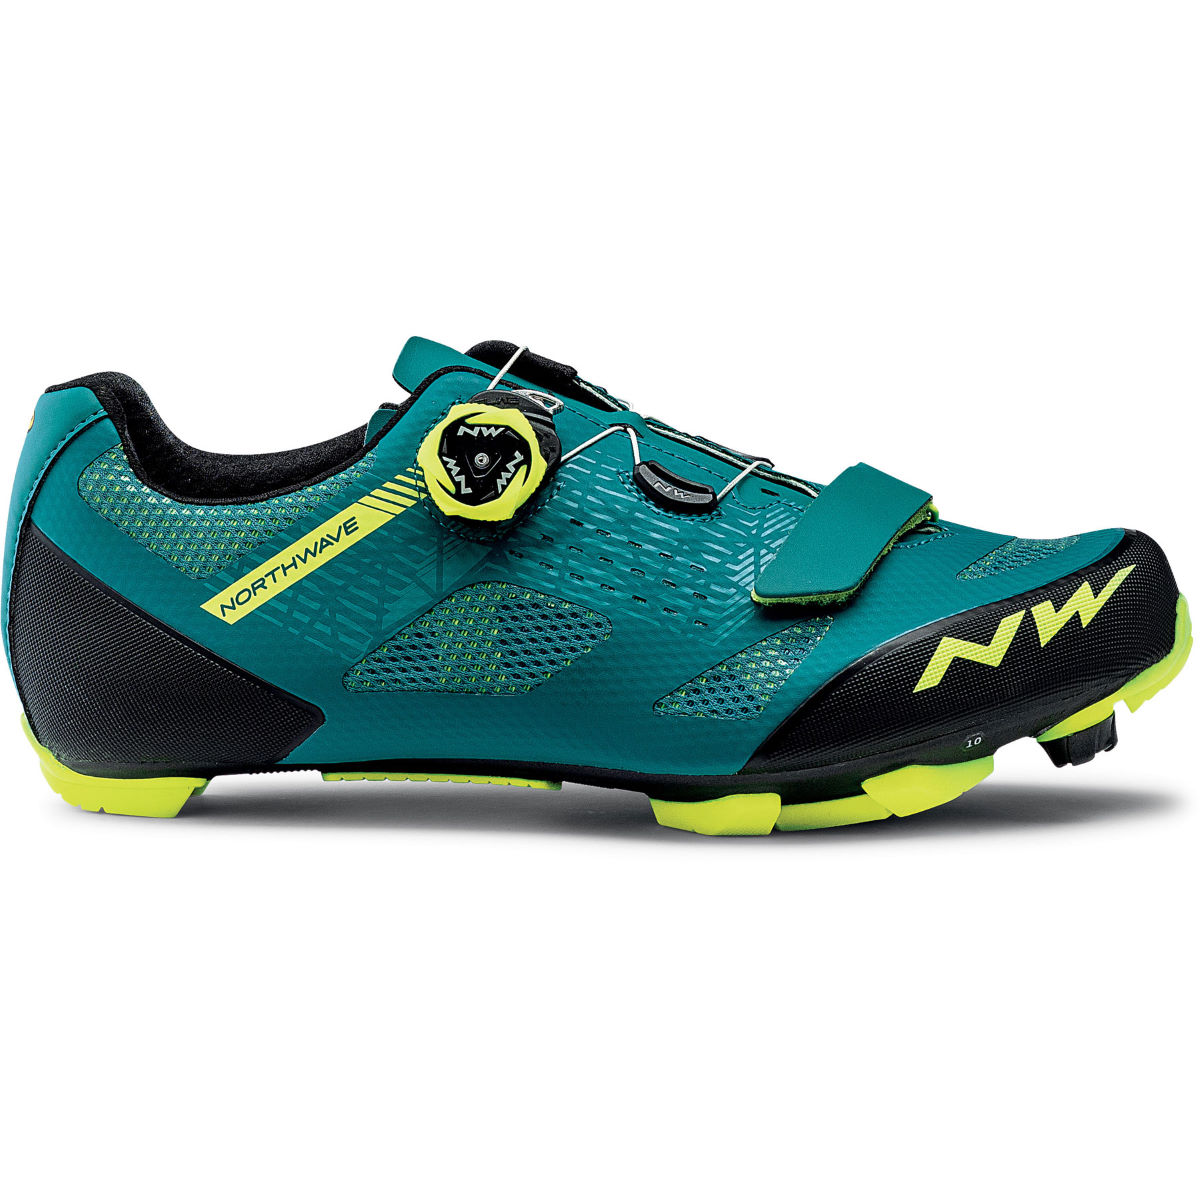 Northwave Northwave Razer MTB Shoes   Cycling Shoes